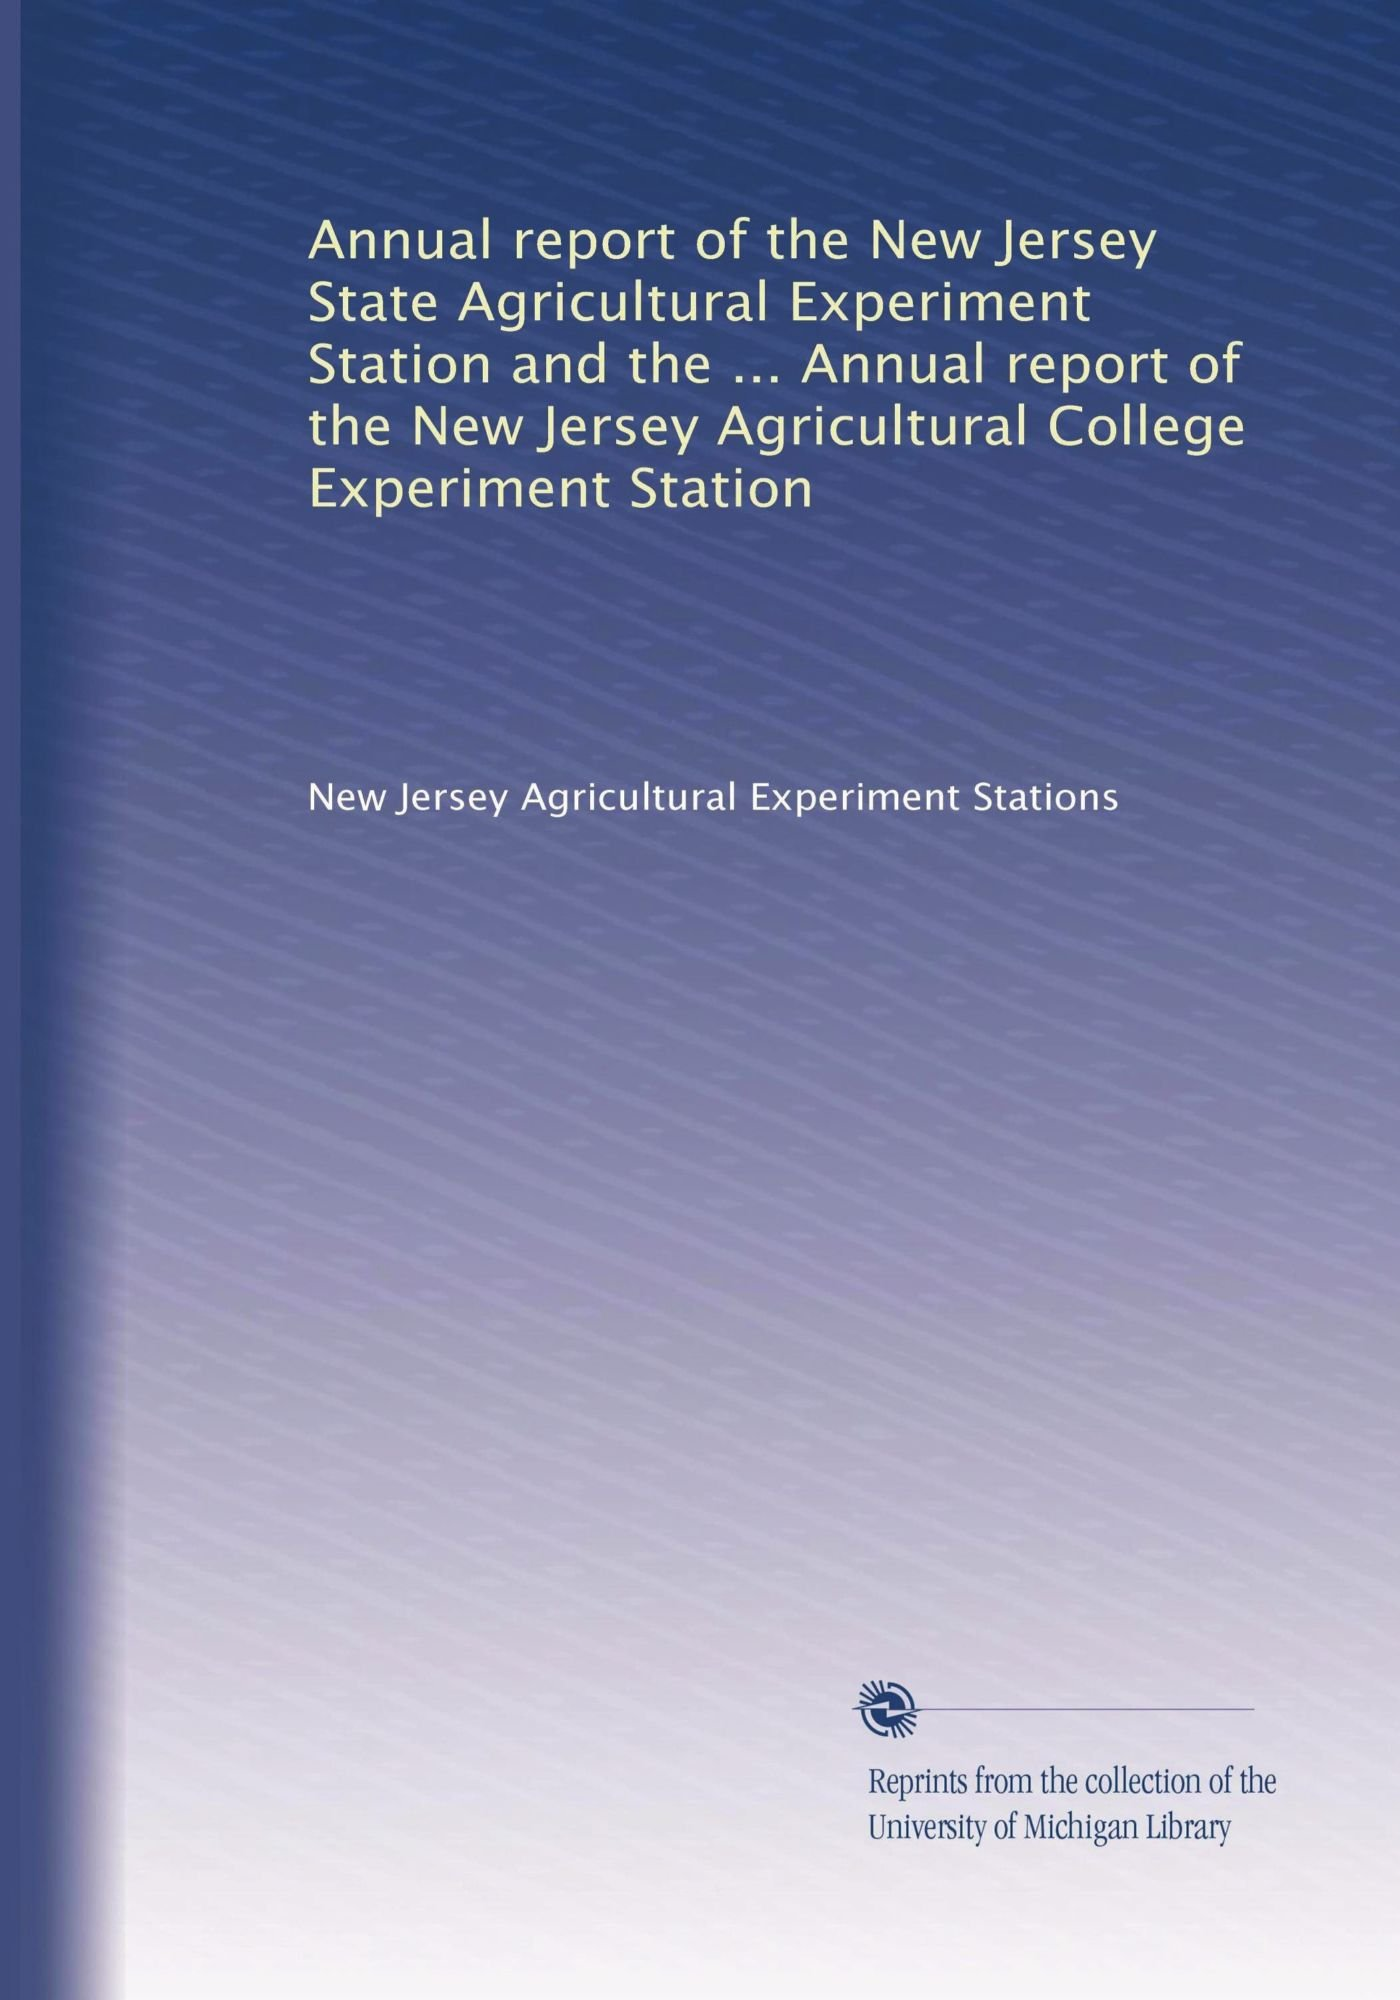 Annual report of the New Jersey State Agricultural Experiment Station and the ... Annual report of the New Jersey Agricultural College Experiment Station (Volume 31) ebook